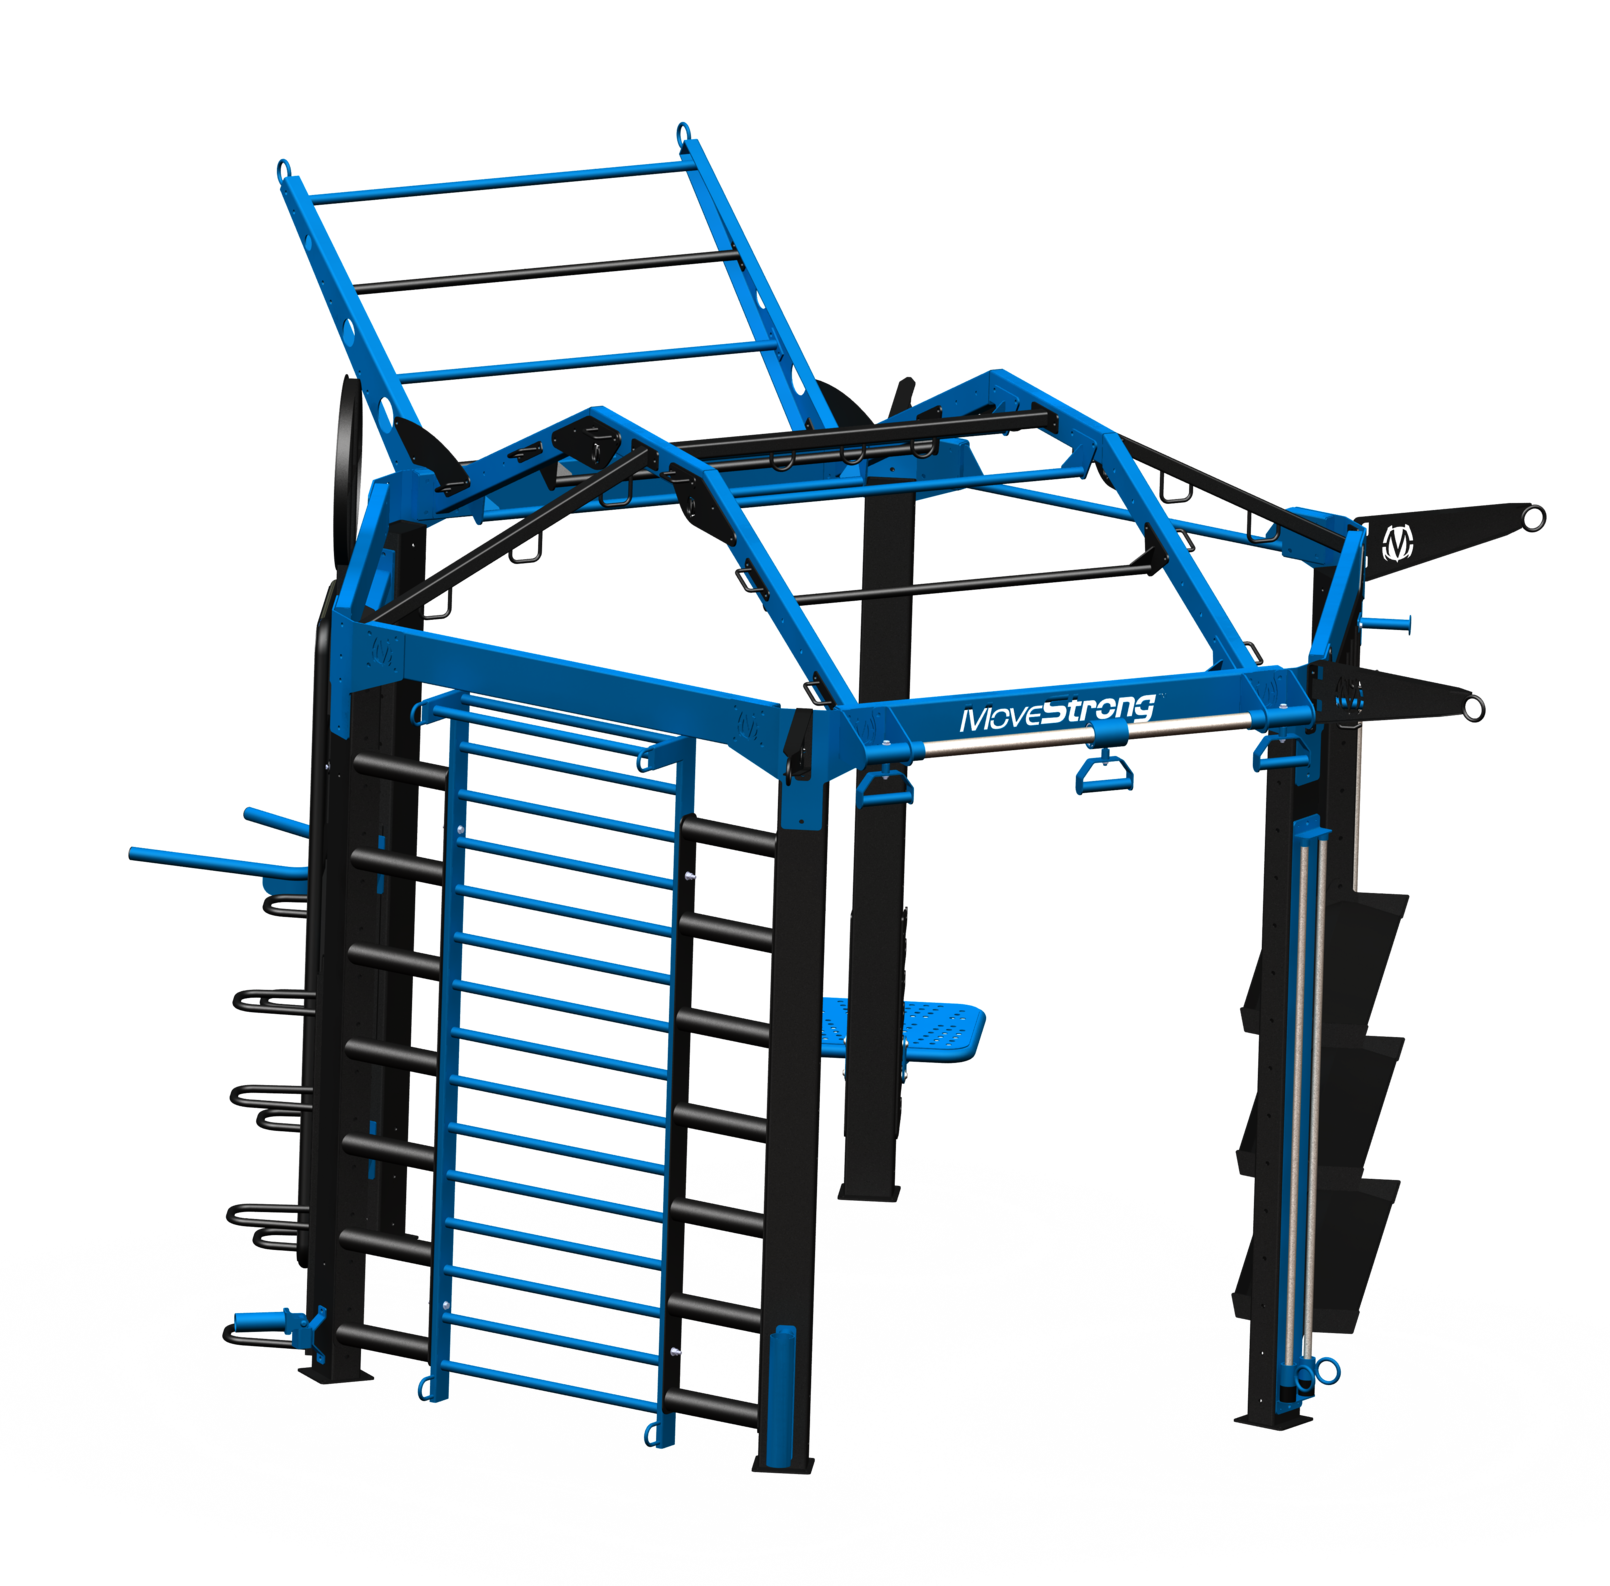 """NOVA-6 FTS with Options:  Create a truly unique & challenging training station with options  11'5"""" L x 14'8"""" Wx 10'4"""" H (with tiered climber bar at end)*"""